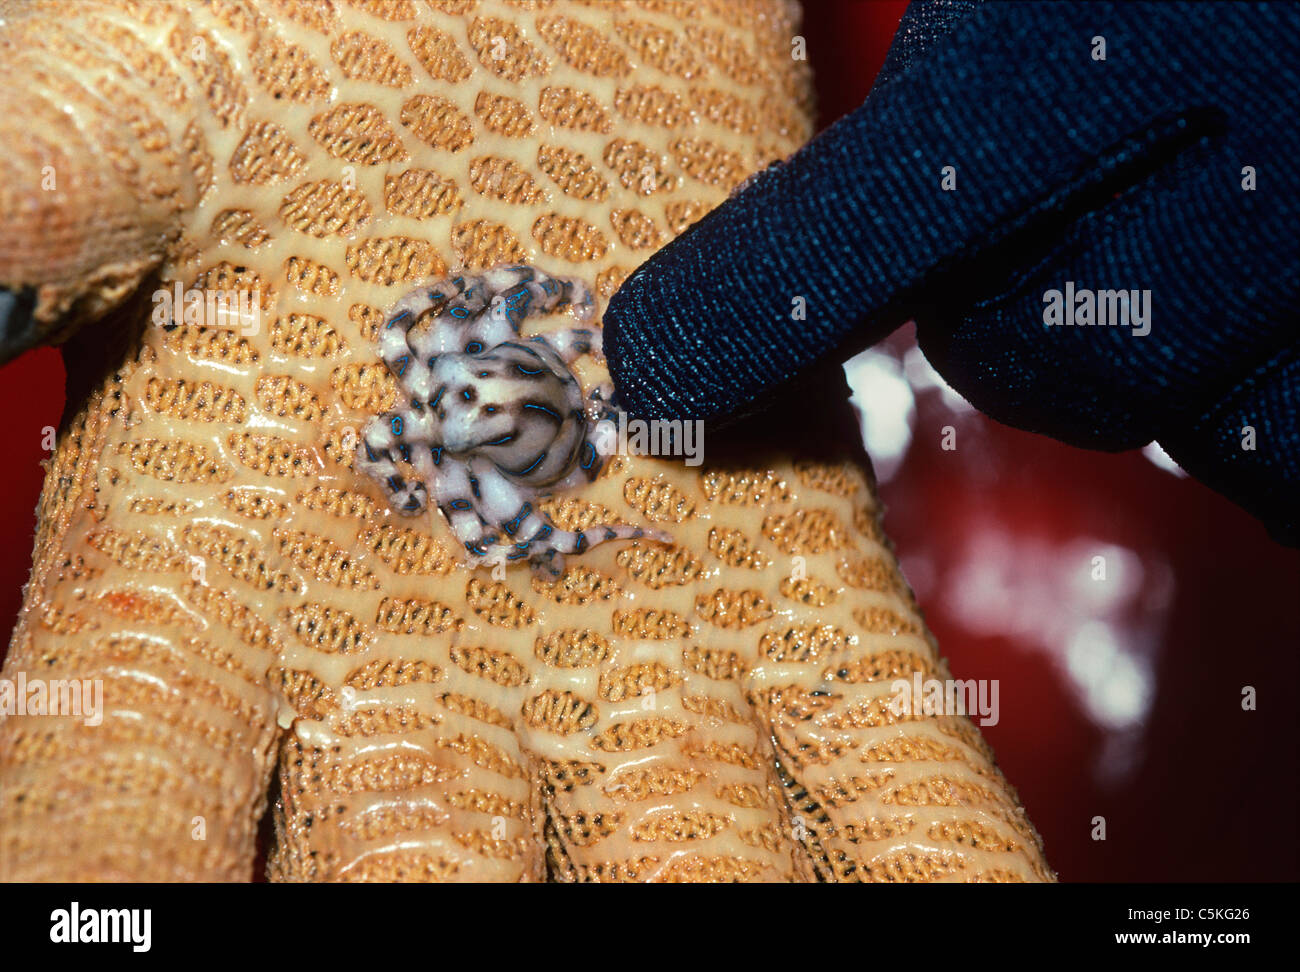 Scientist Holding A Poisonous Blue Ringed Octopus